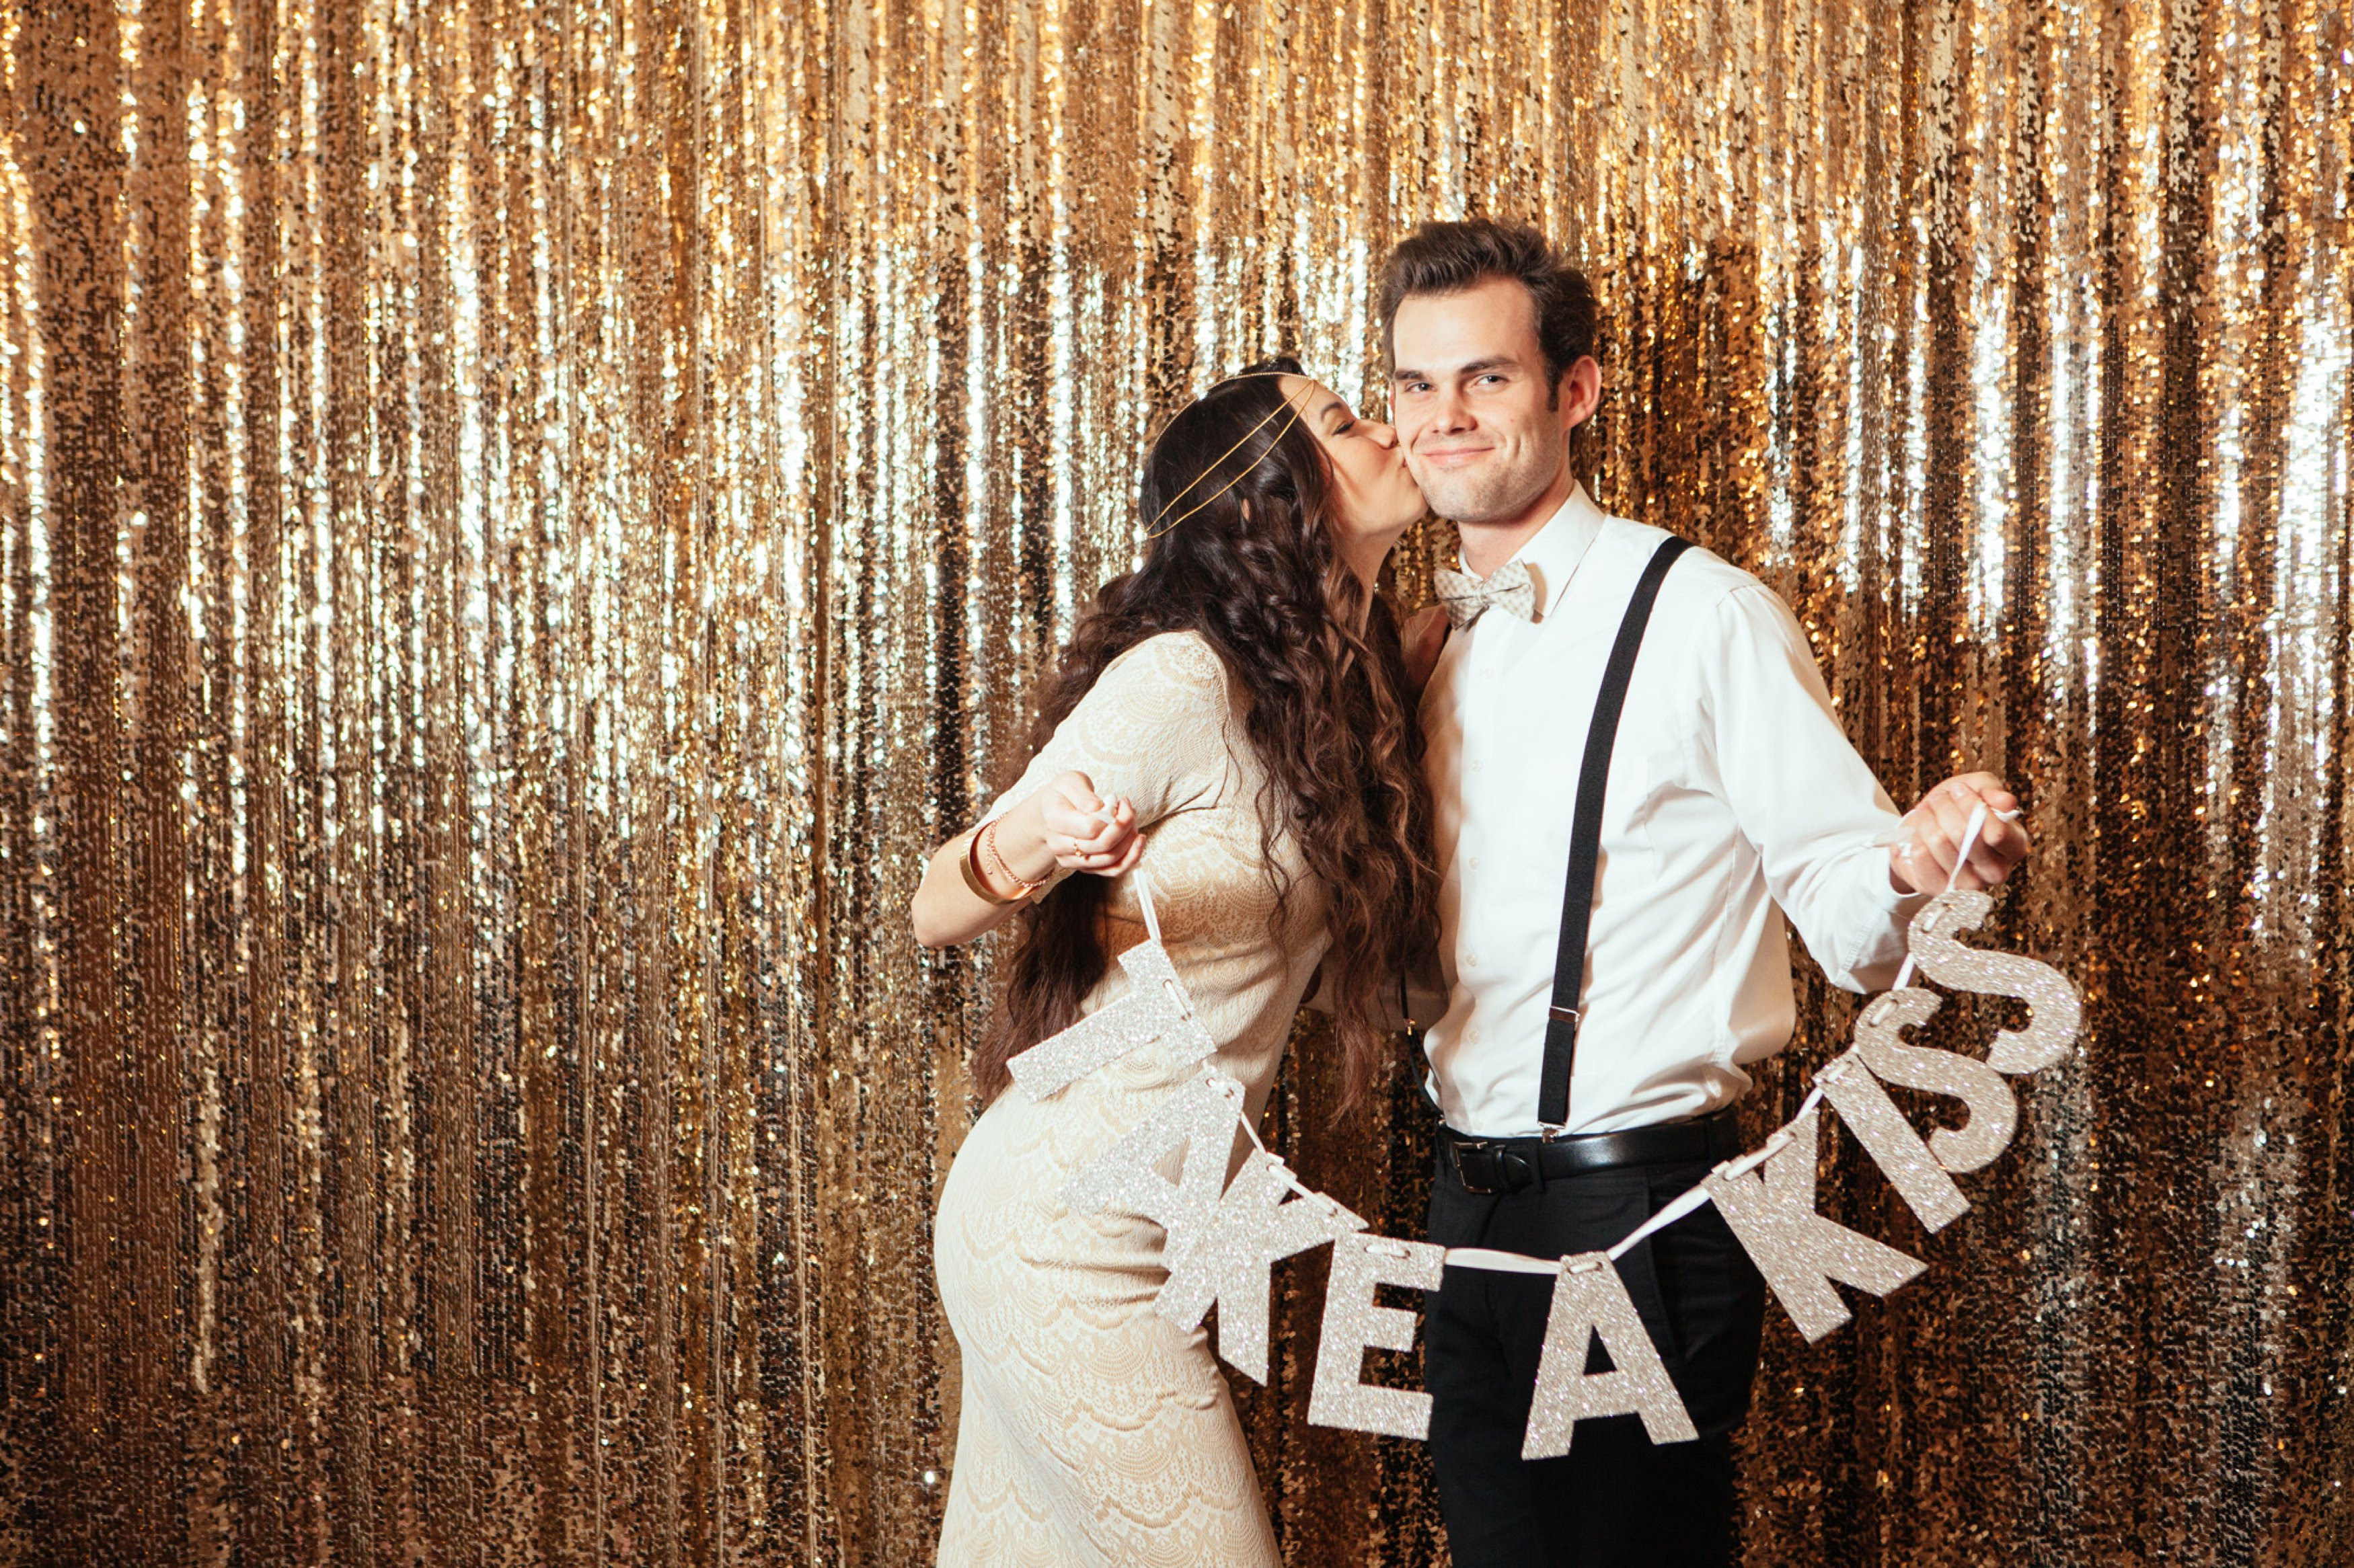 New Years Eve Engagement Party Wedding Photography Las Vegas